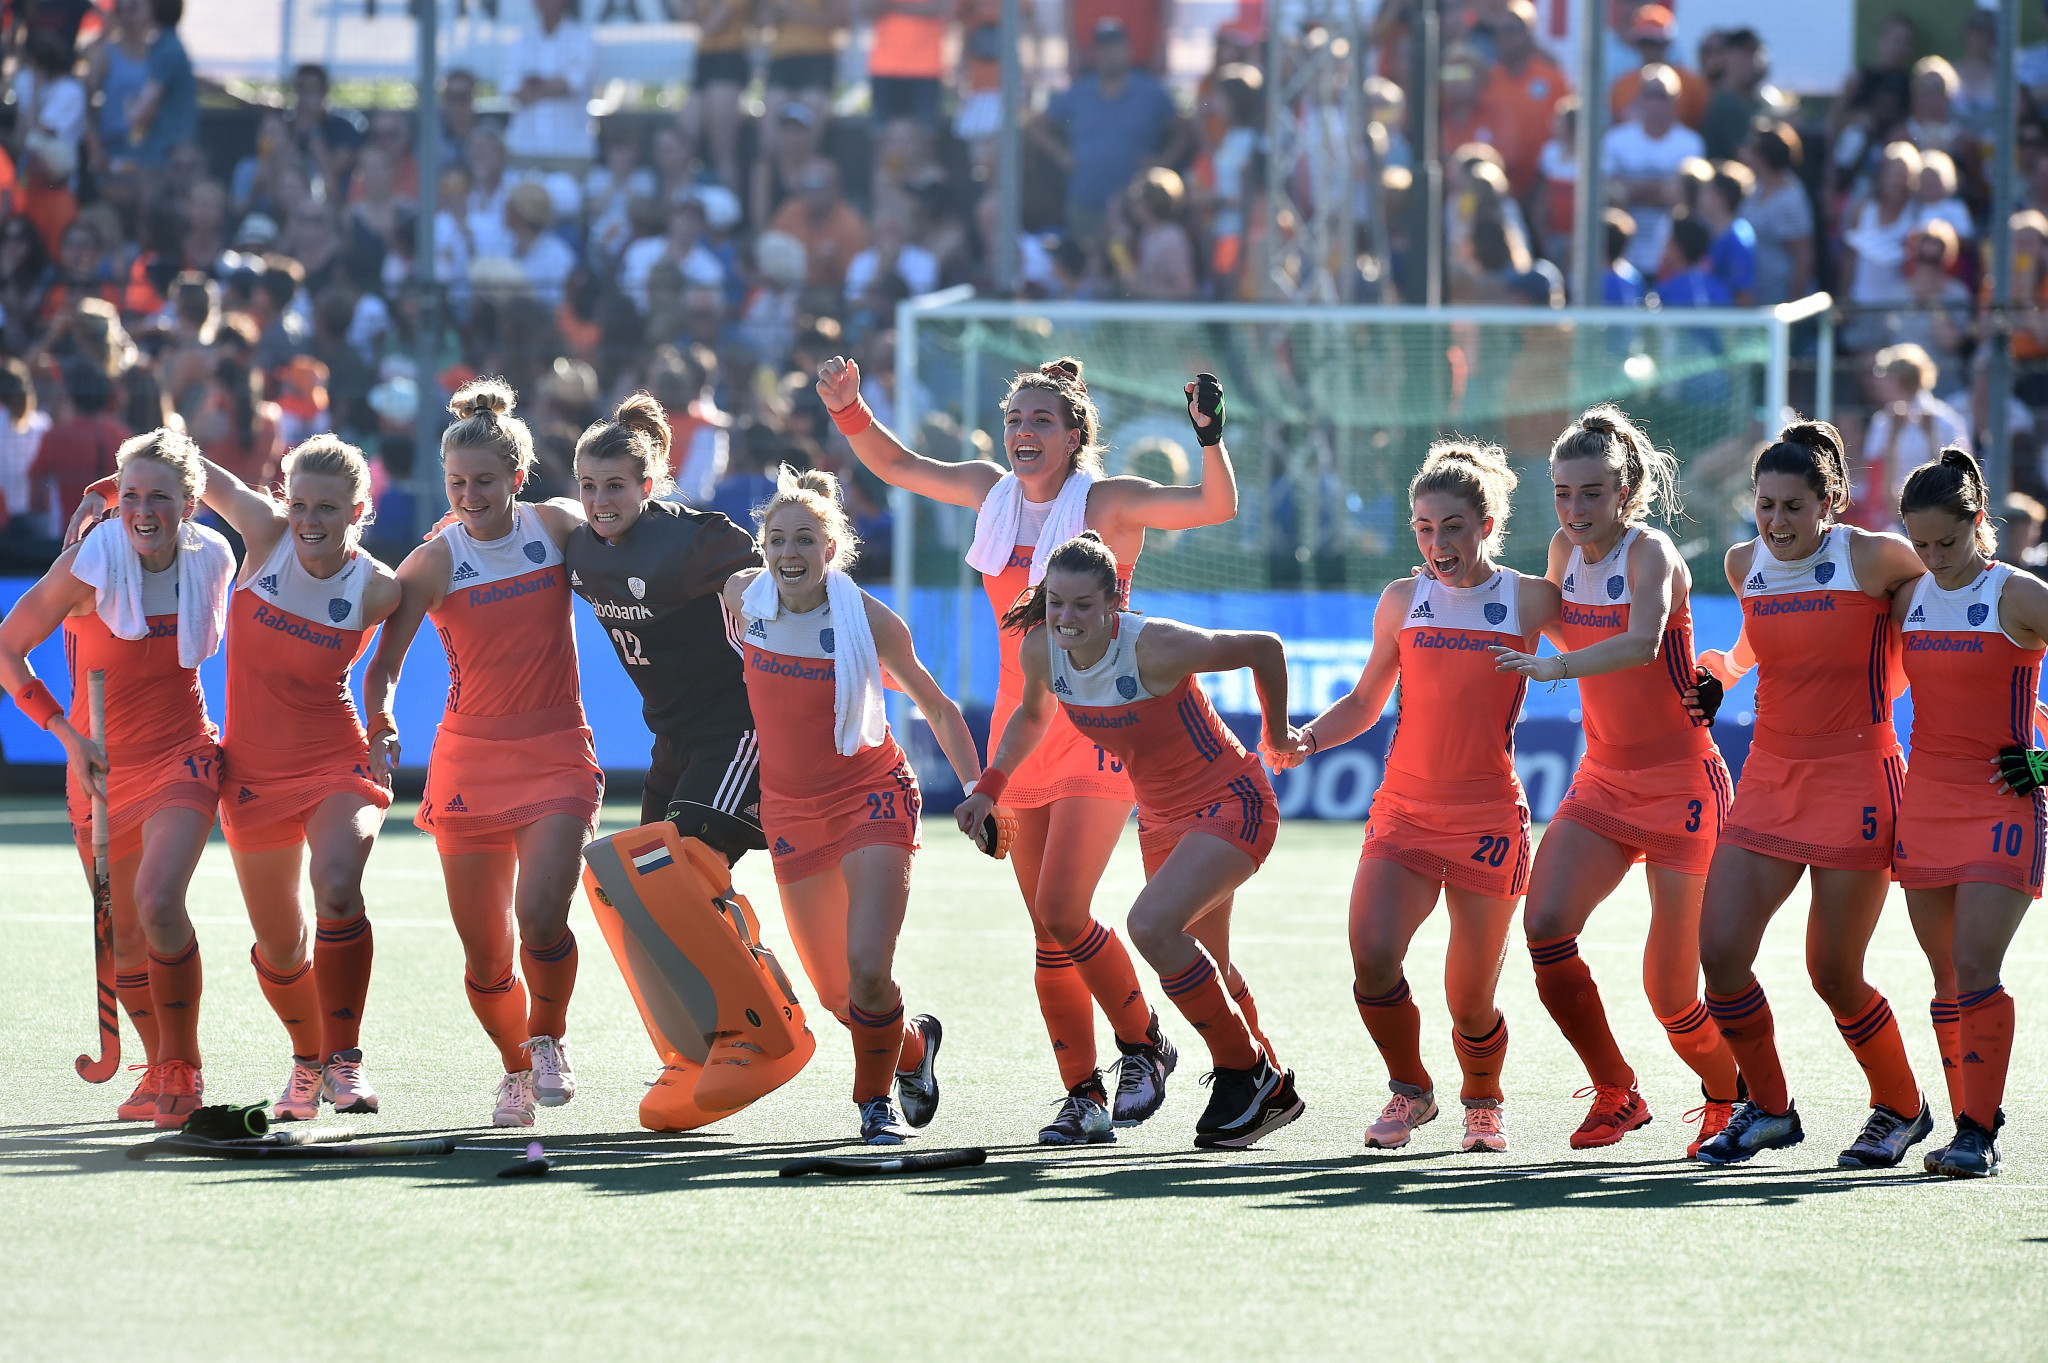 The Netherlands are set to retain their women's Hockey Pro League title ©Getty Images